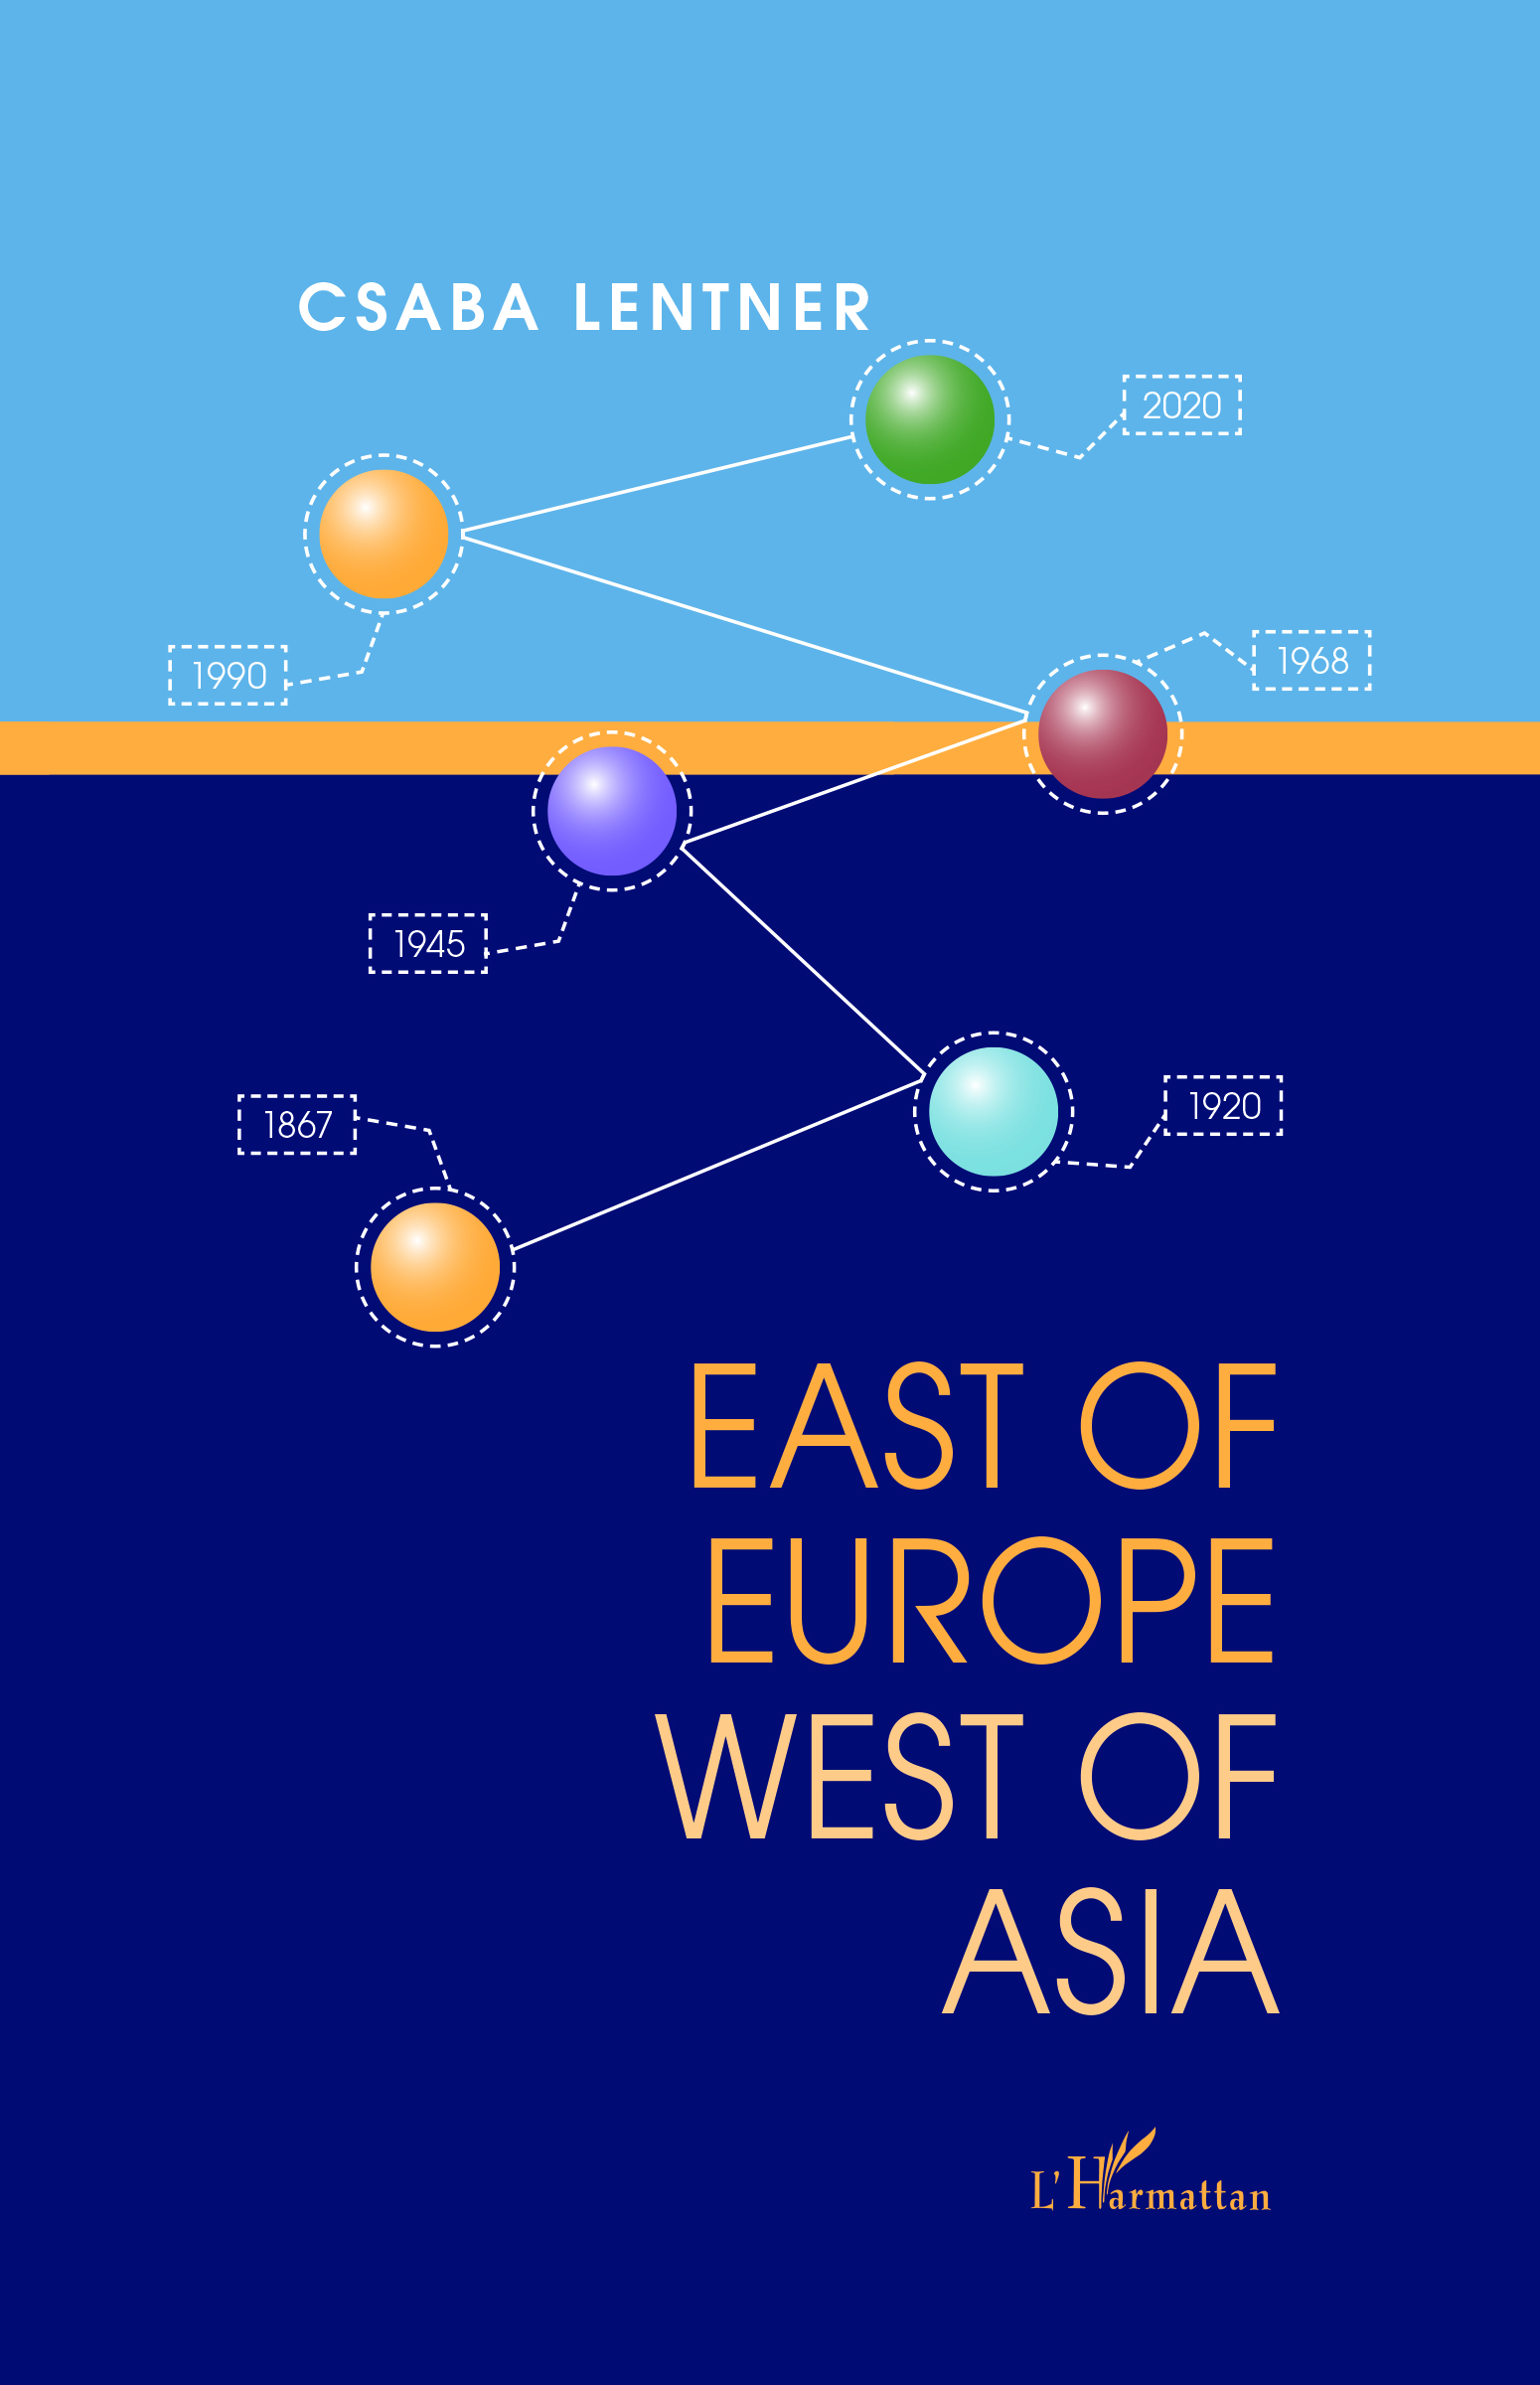 EAST OF EUROPE WEST OF ASIA